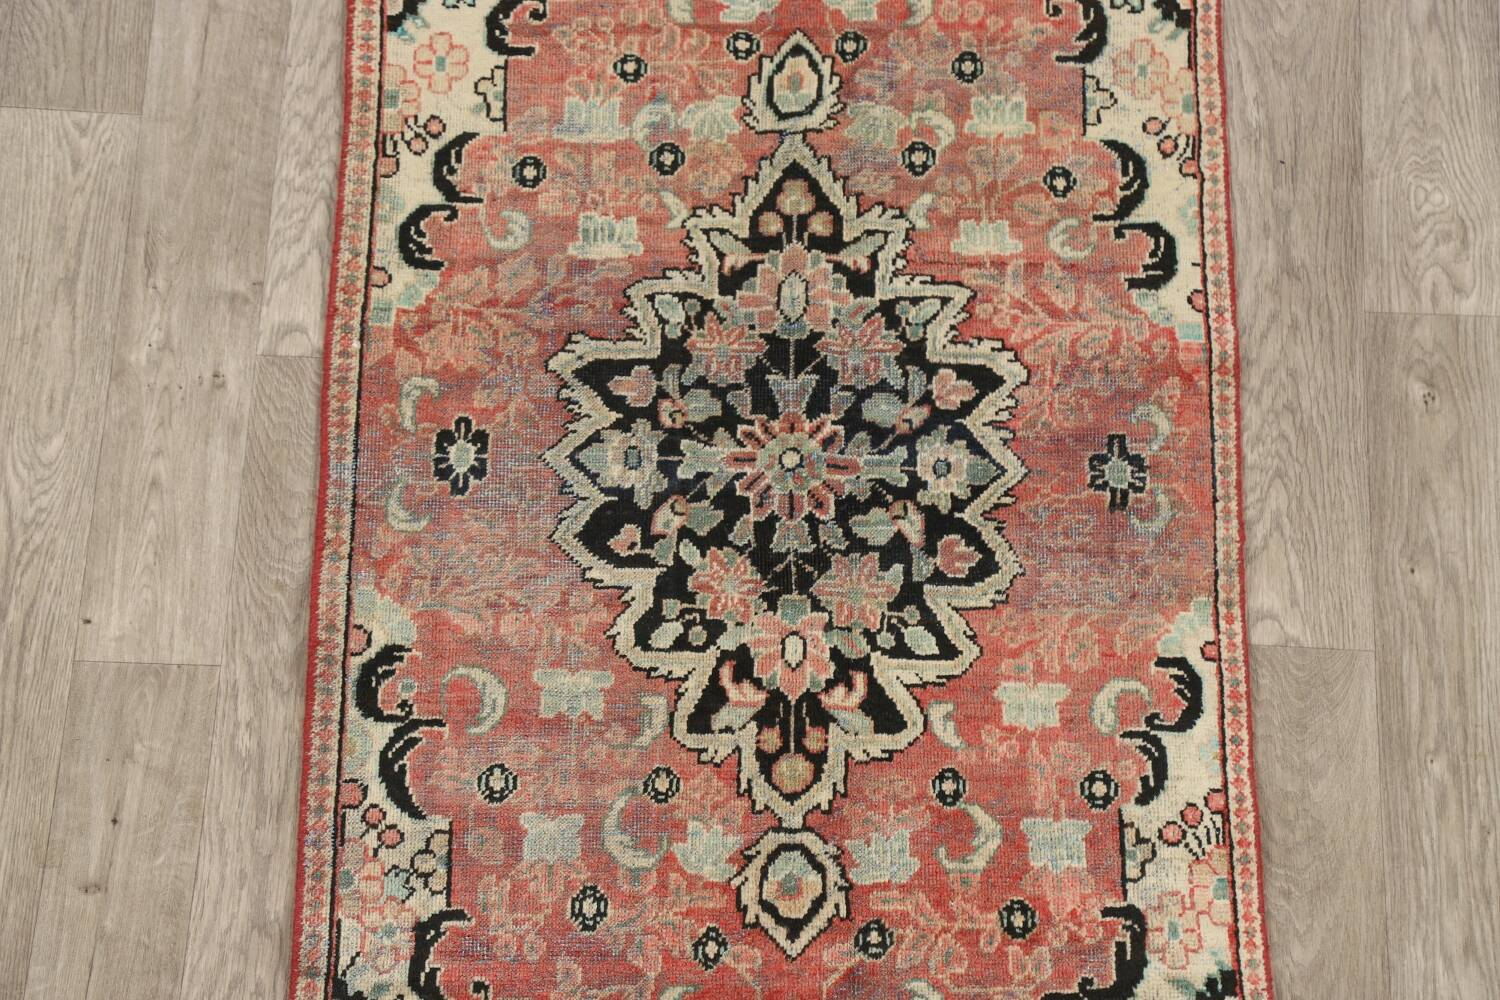 Antique Floral Mahal Persian Area Rug 3x6 image 3